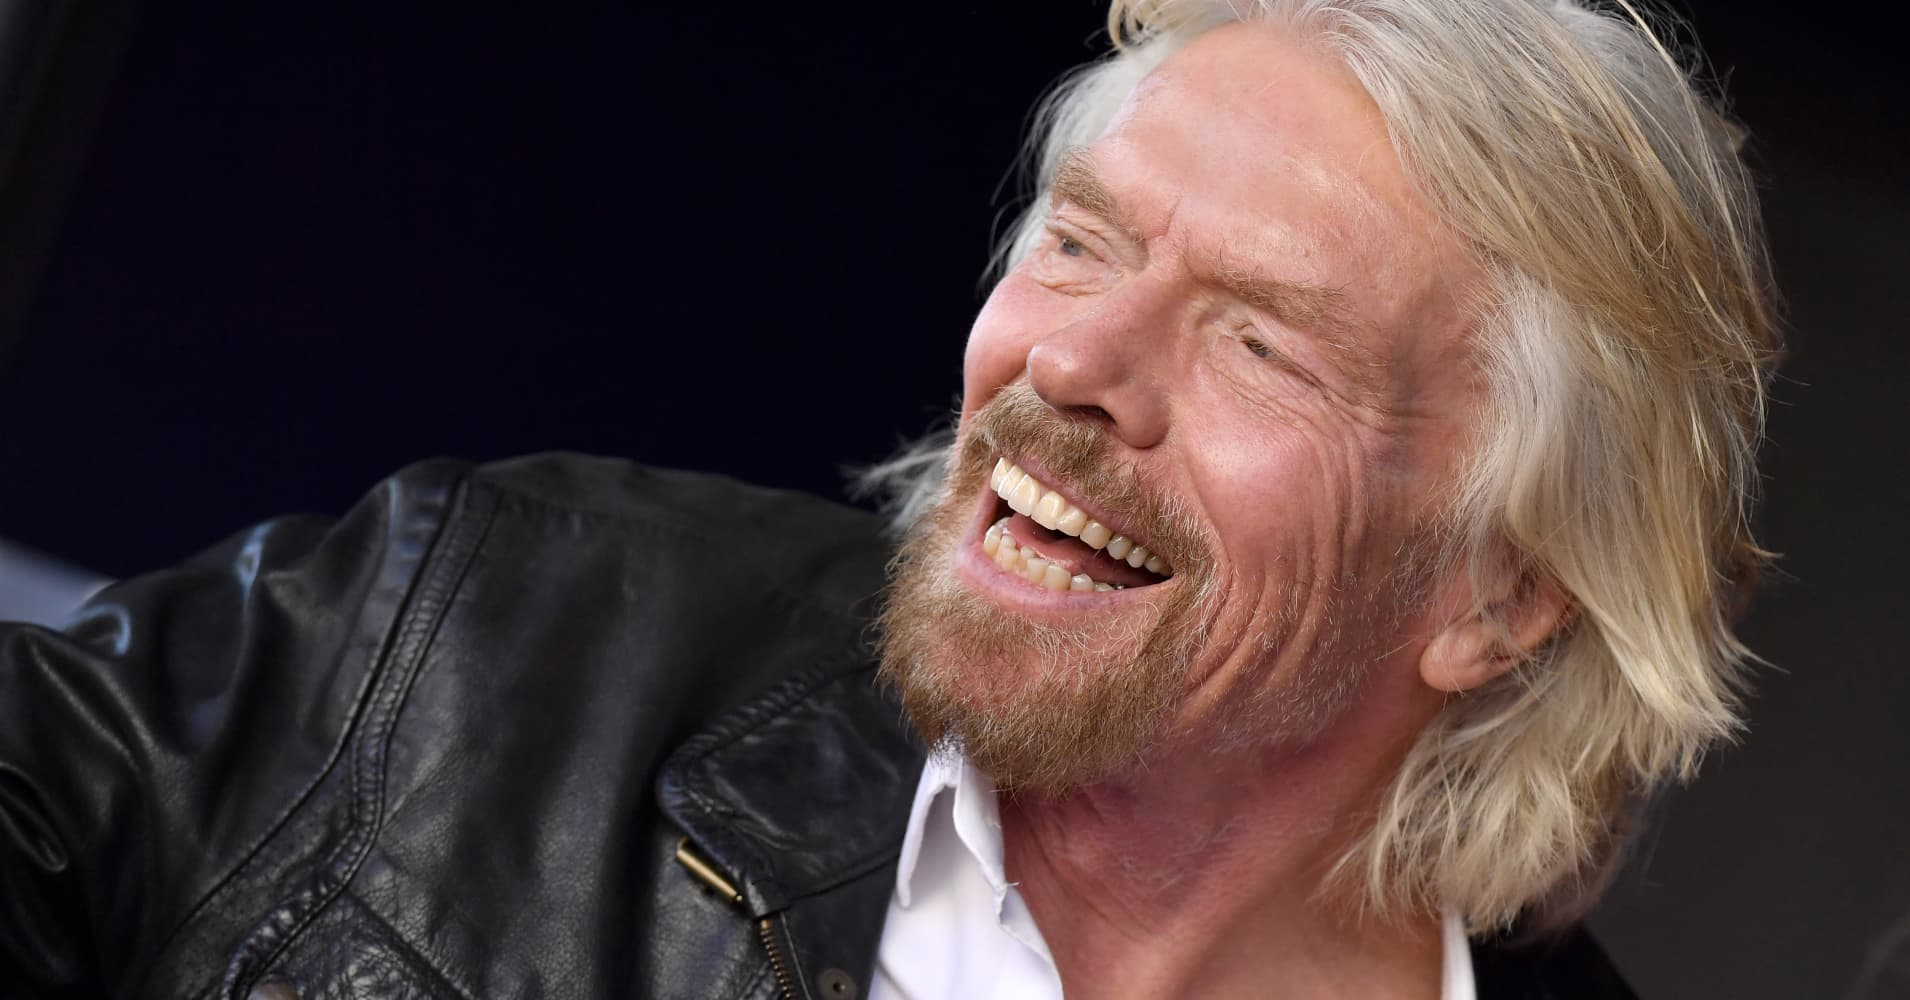 Self-made billionaire Richard Branson says he regrets this money mistake